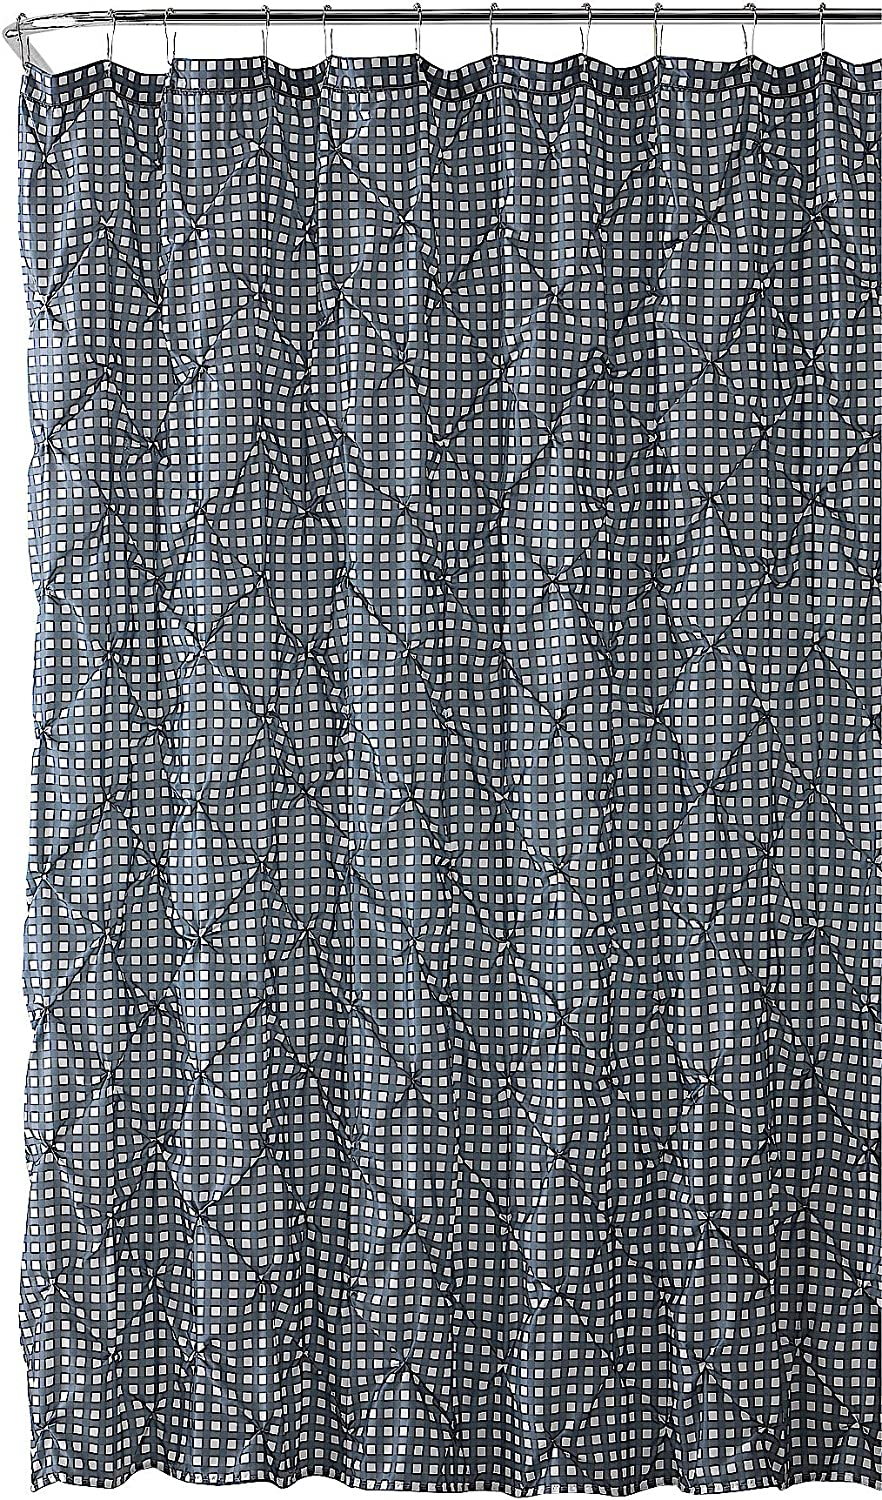 VCNY Home Fabric Shower Curtain: Farmhouse Gingham with Pintuck Design (Gunmetal Grey and White)